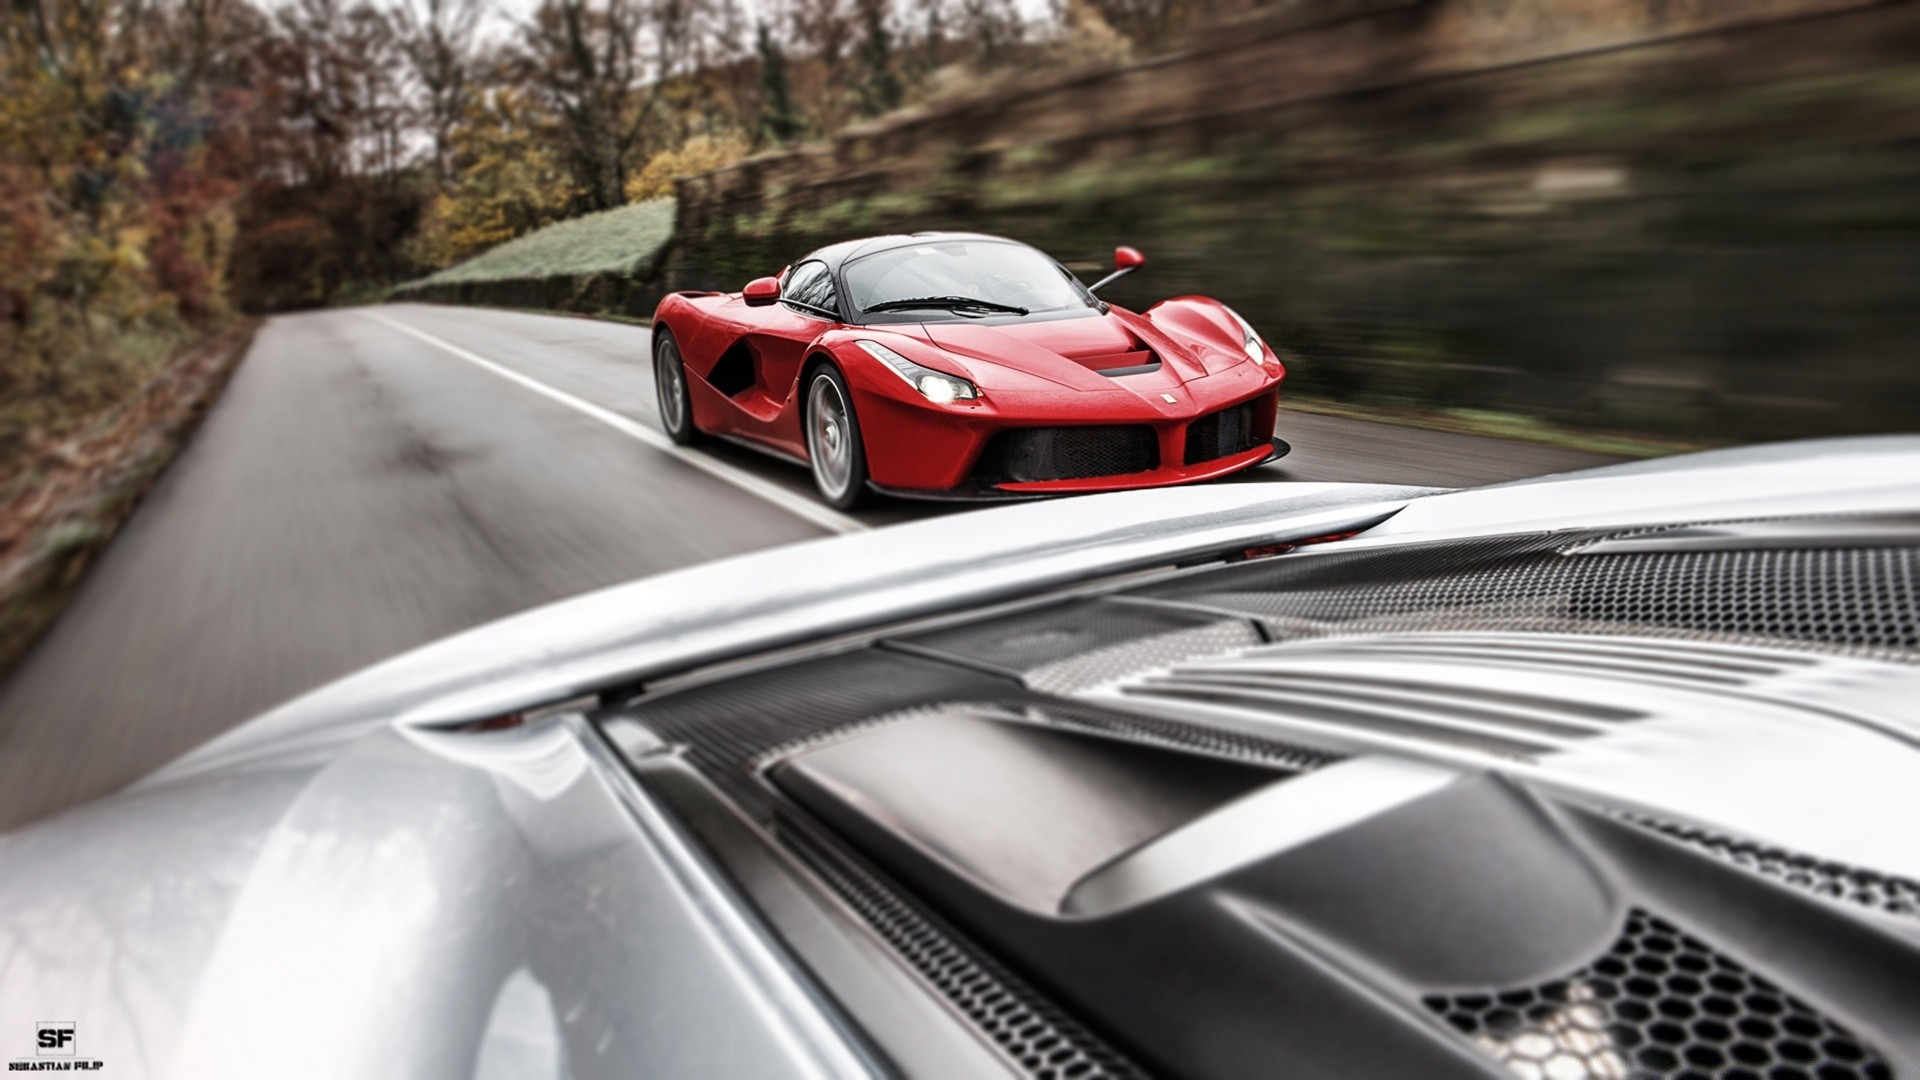 Laferrari - Top Gear